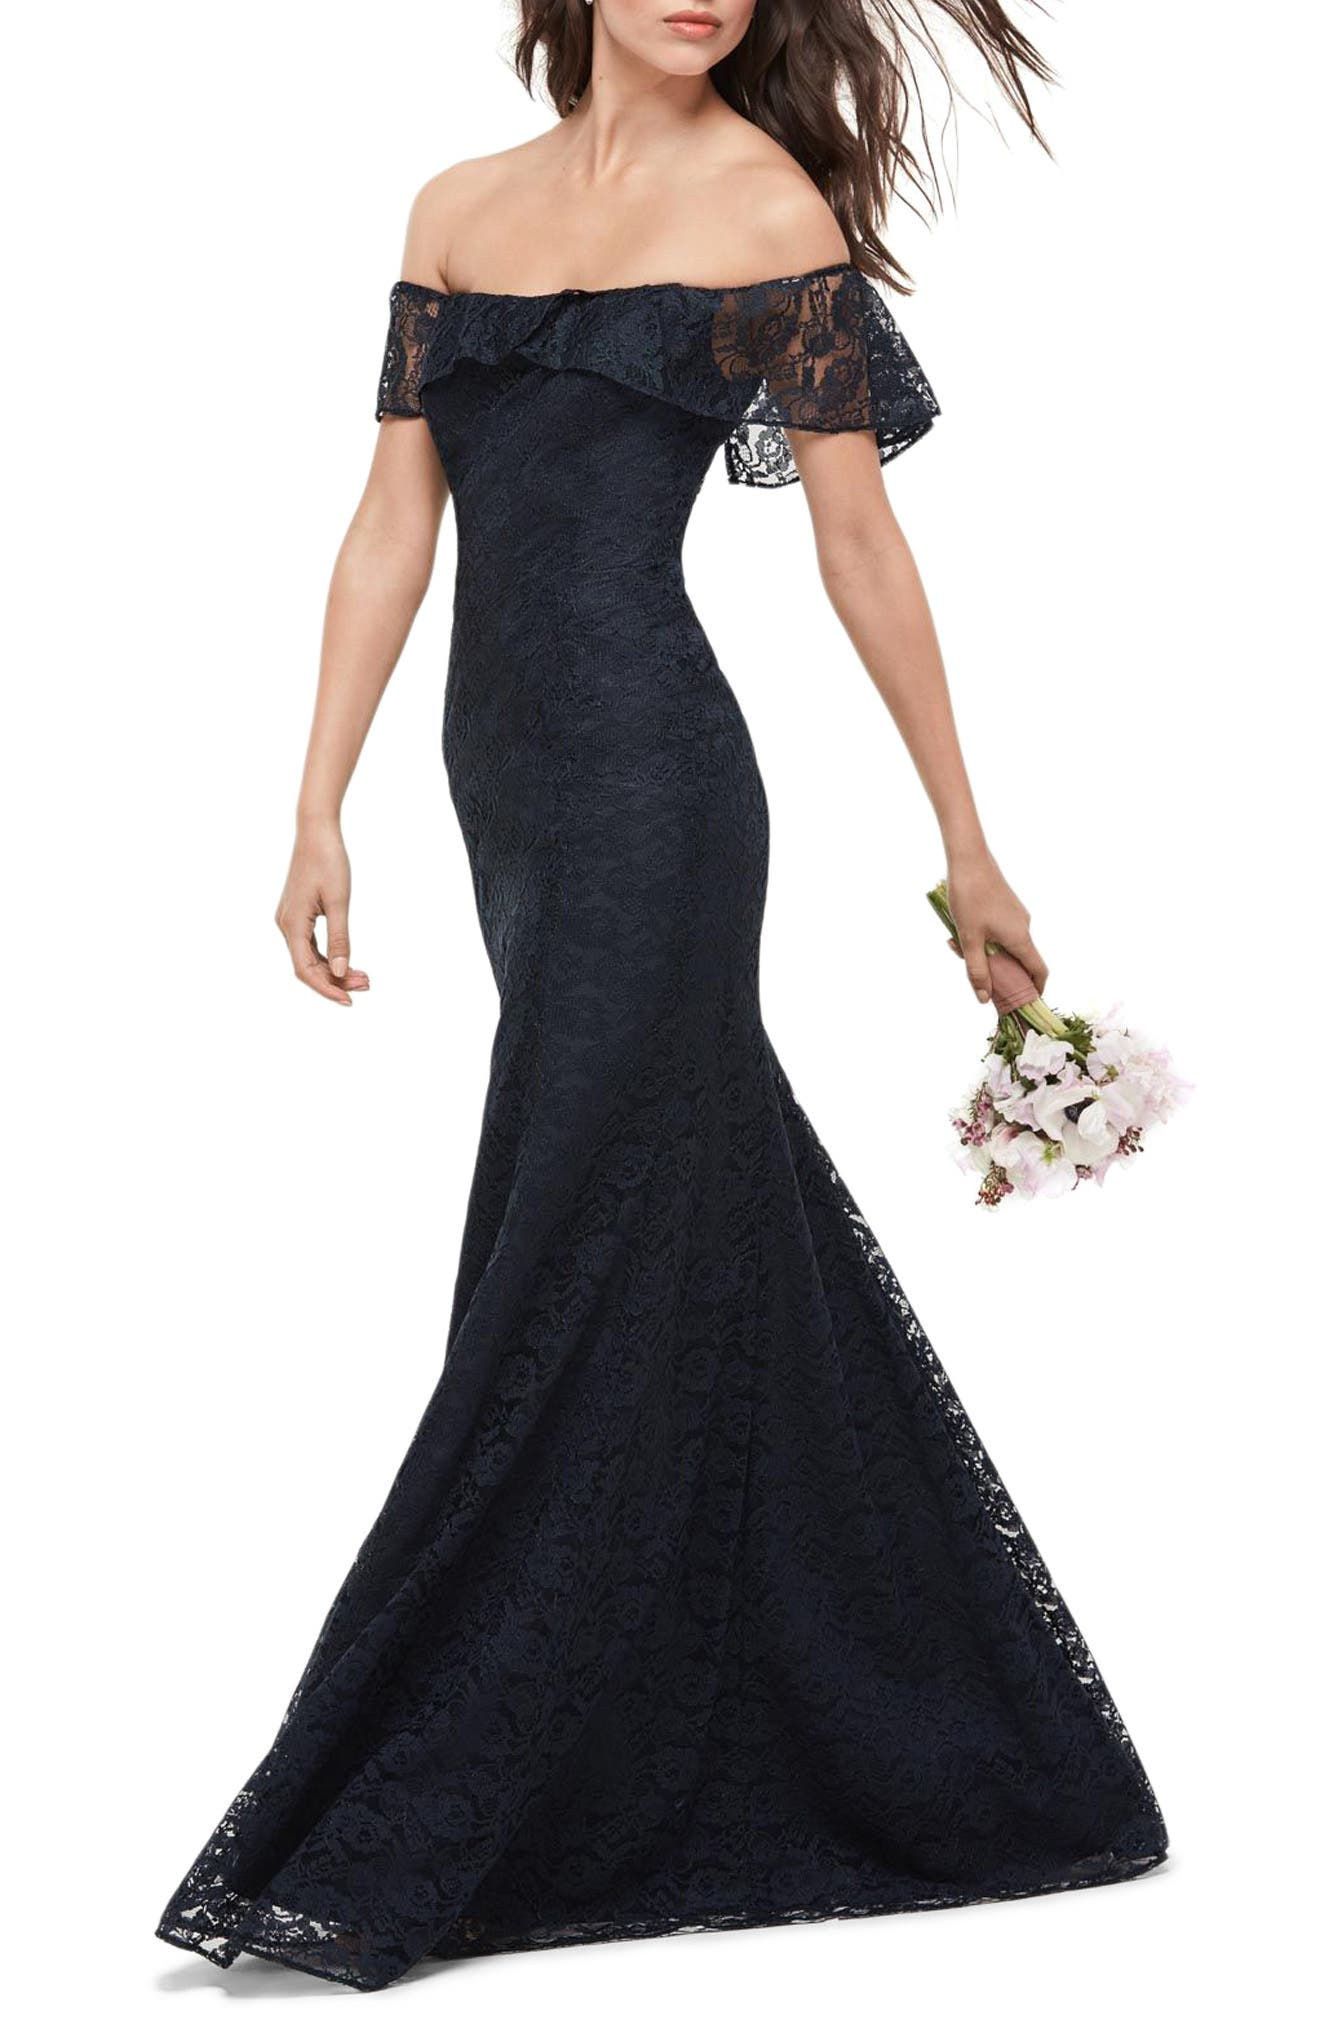 Amour Lace Off the Shoulder Gown,                             Main thumbnail 1, color,